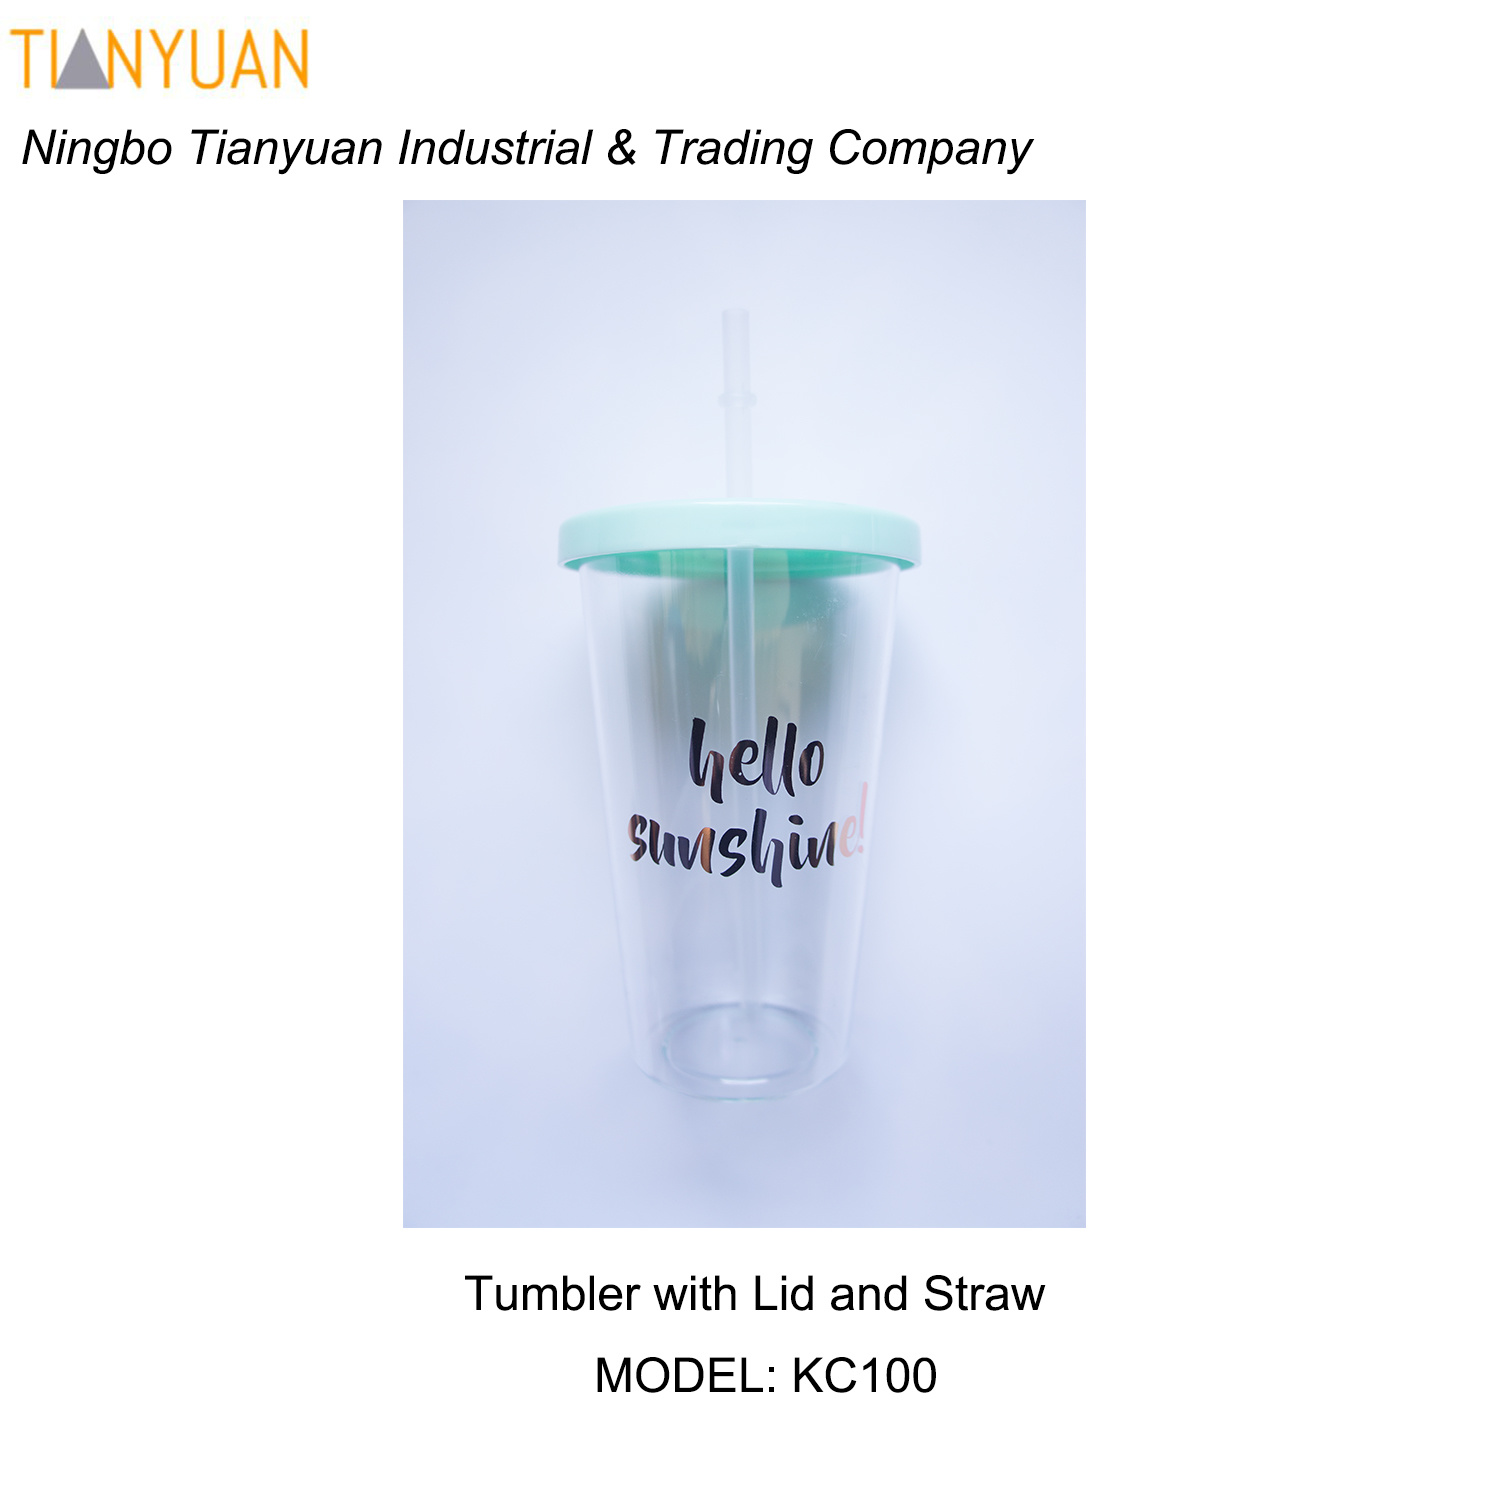 Insulated Tumbler with Lid and Straw /Insulated Double Walled Reusable Acrylic Tumbler Cups W/Lid & Straw